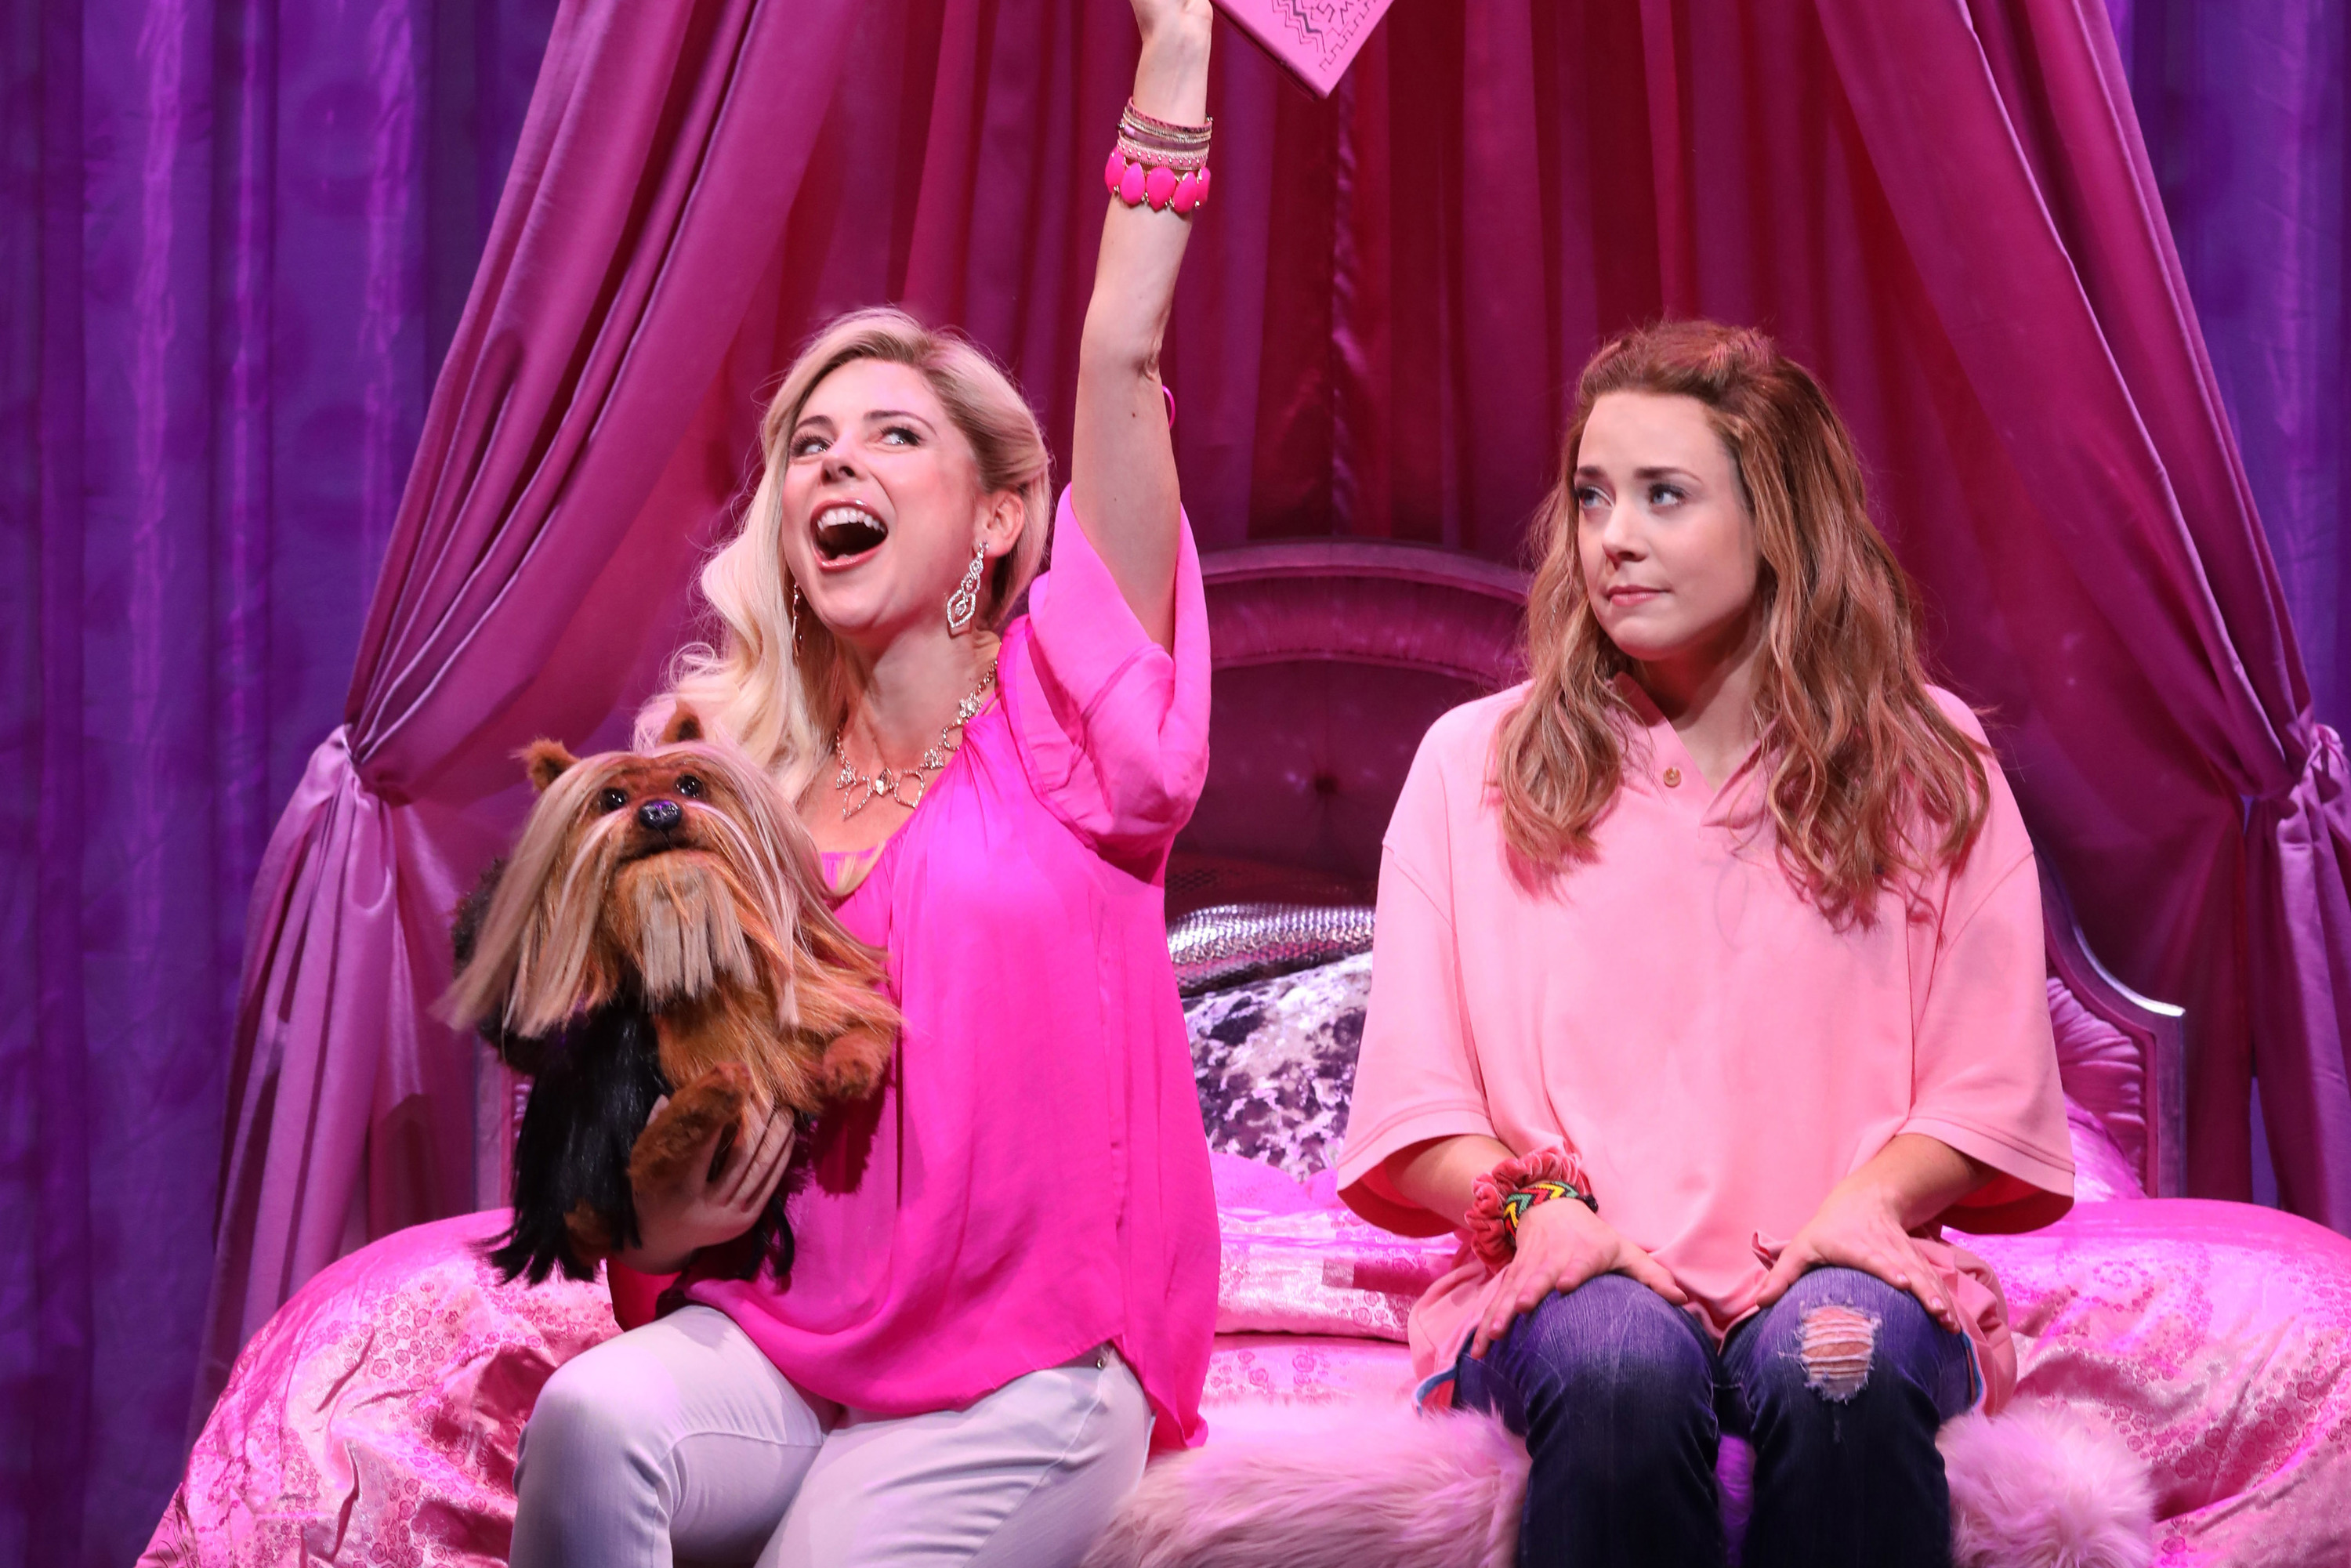 The musical based on the movie Mean Girls will soon be a movie itself